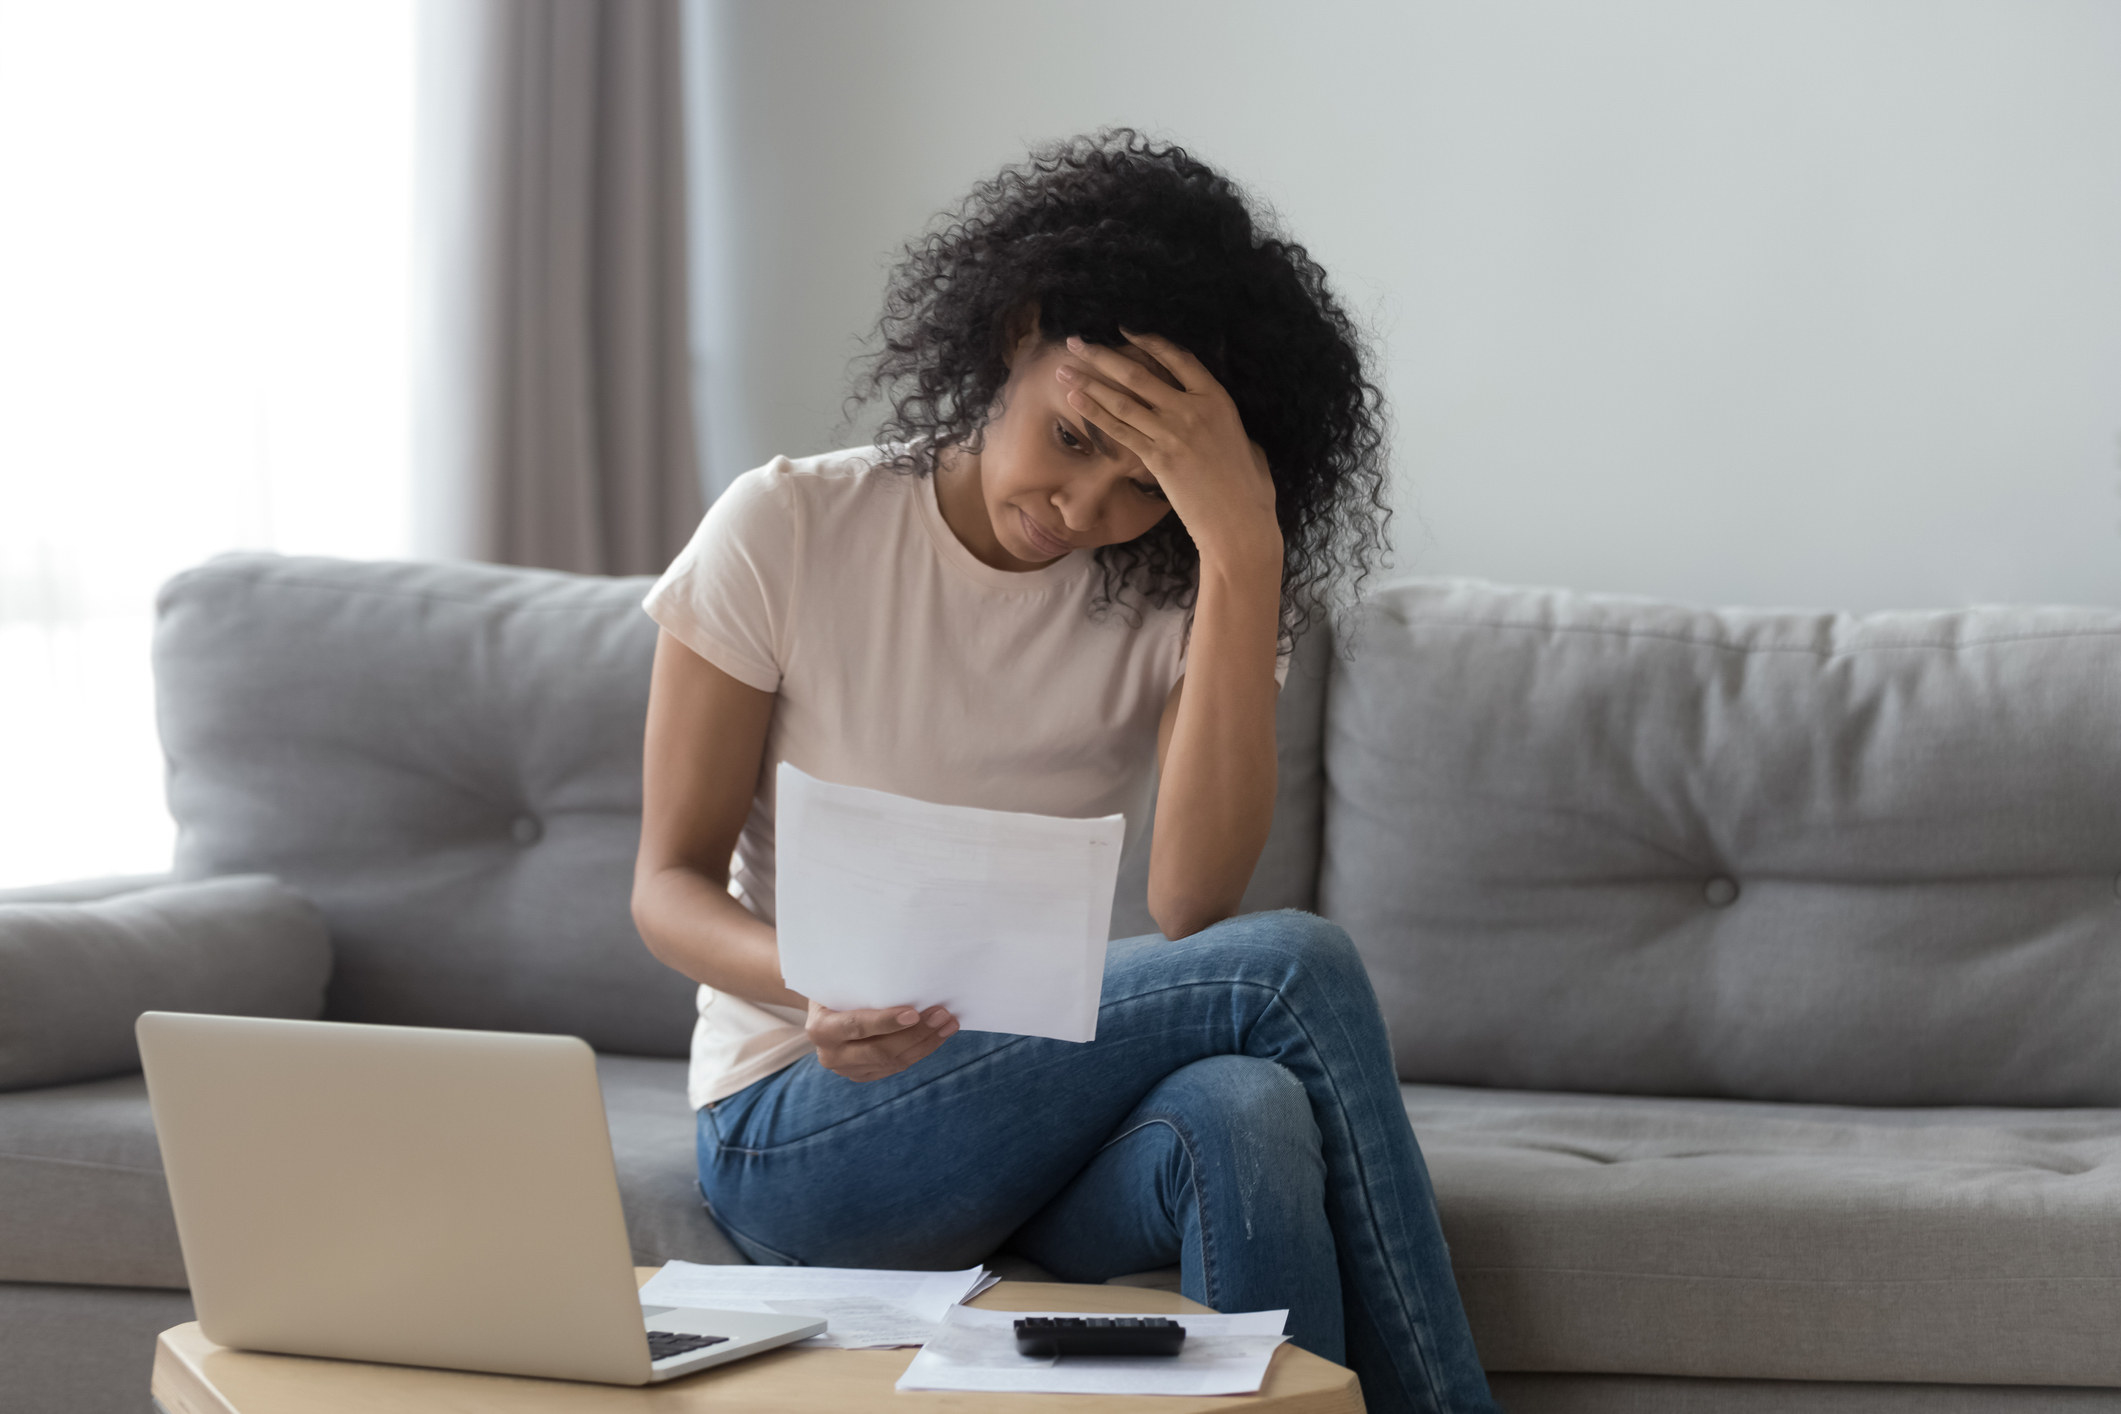 Stressed woman reading a piece of paper